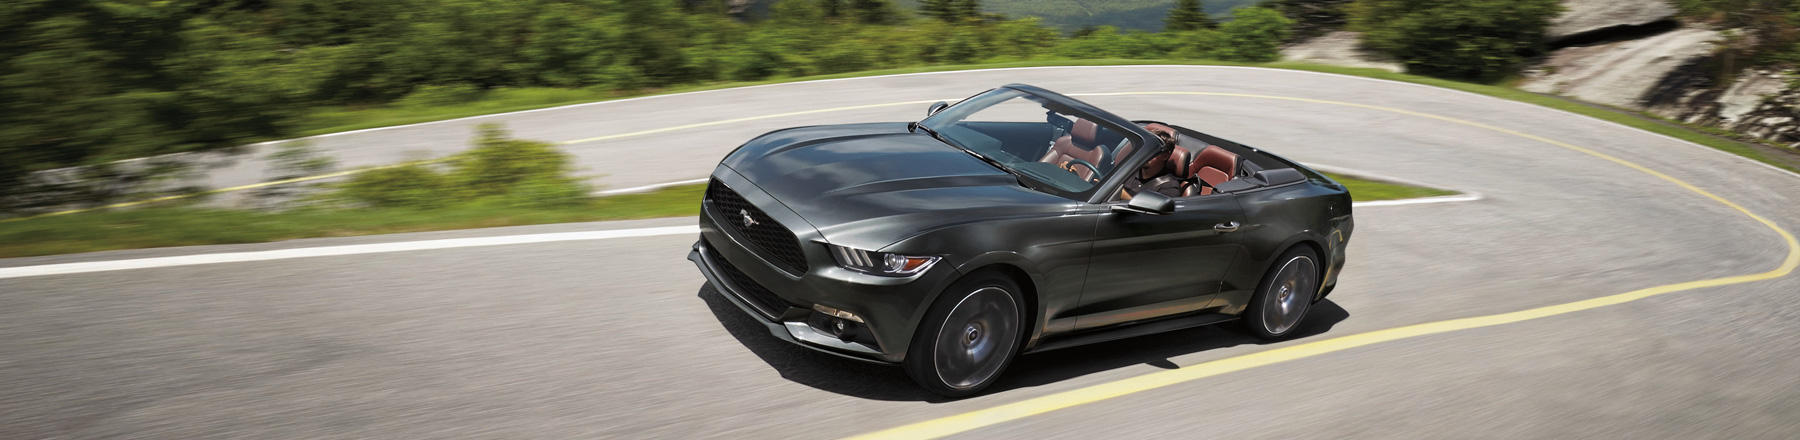 2017 Ford Mustang in Tilbury, ON